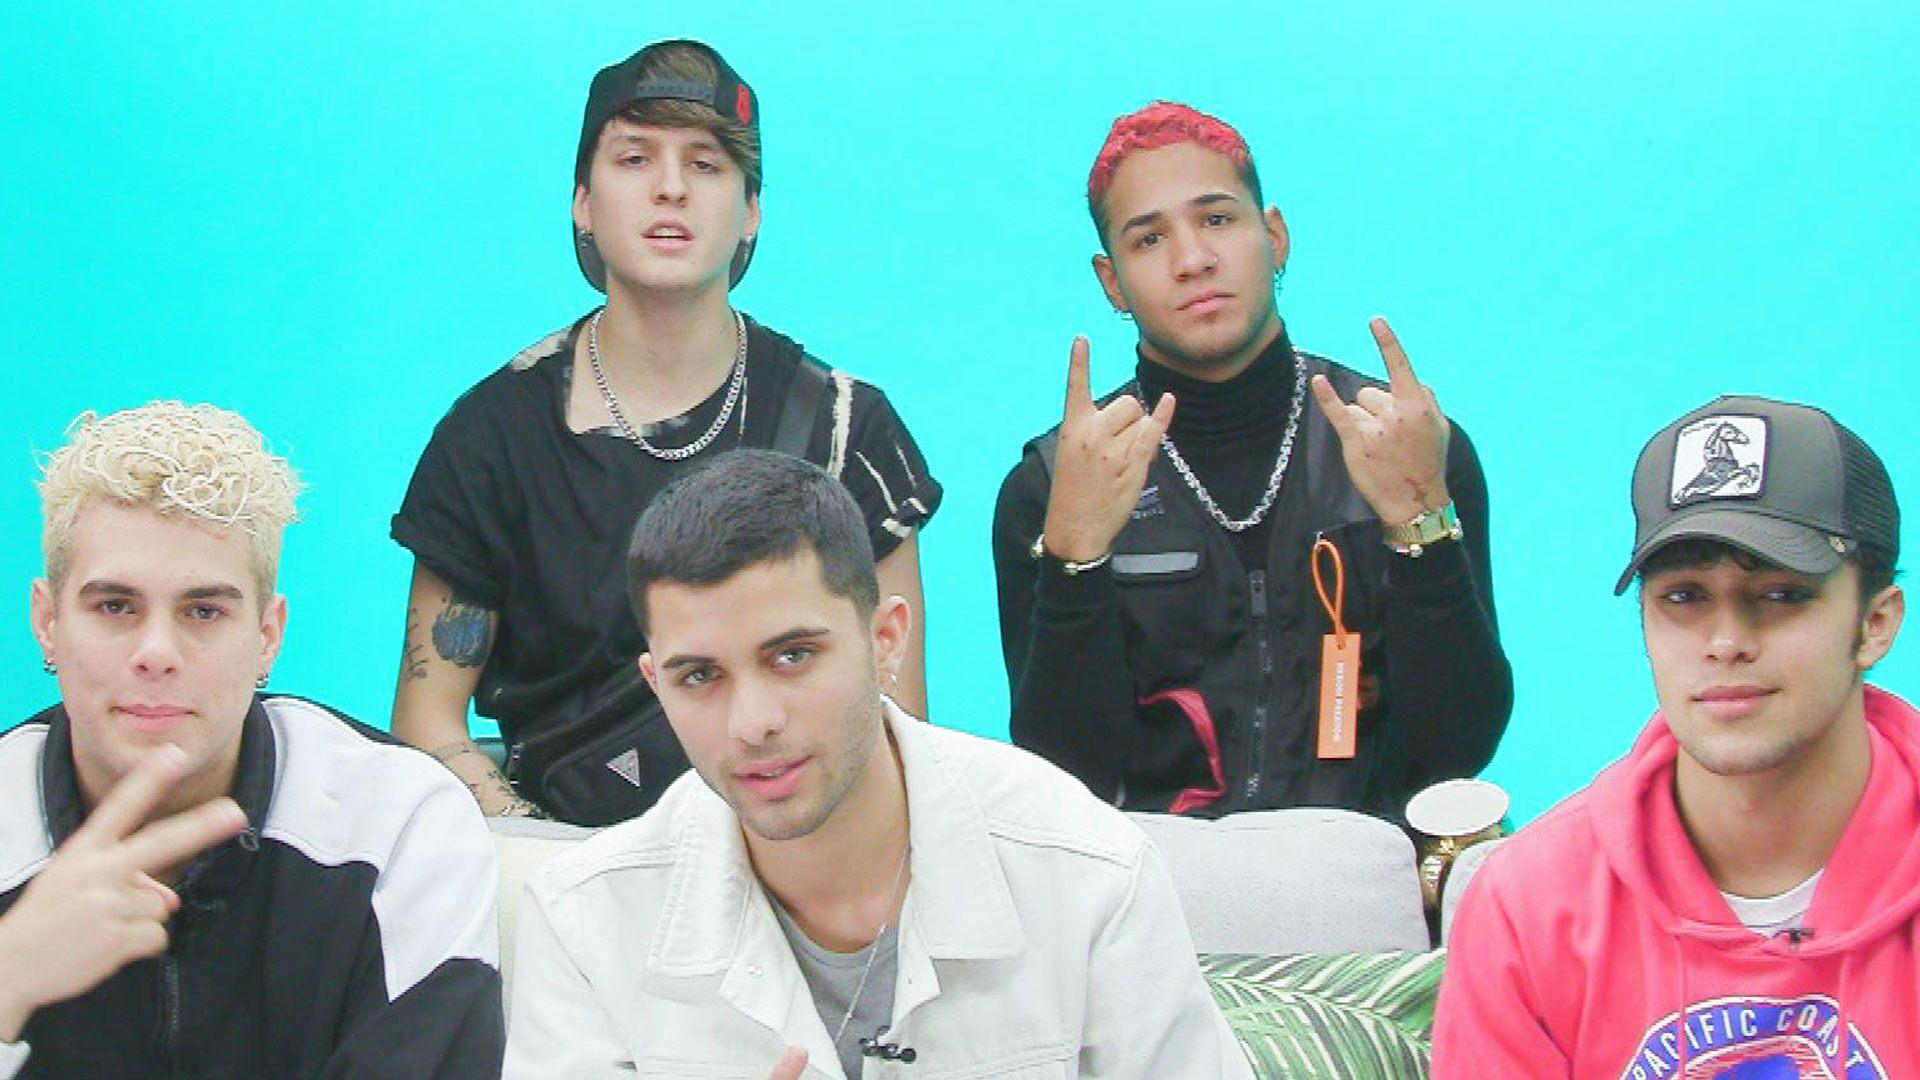 CNCO Says Their New Single 'De Cero' Is About Leaving the